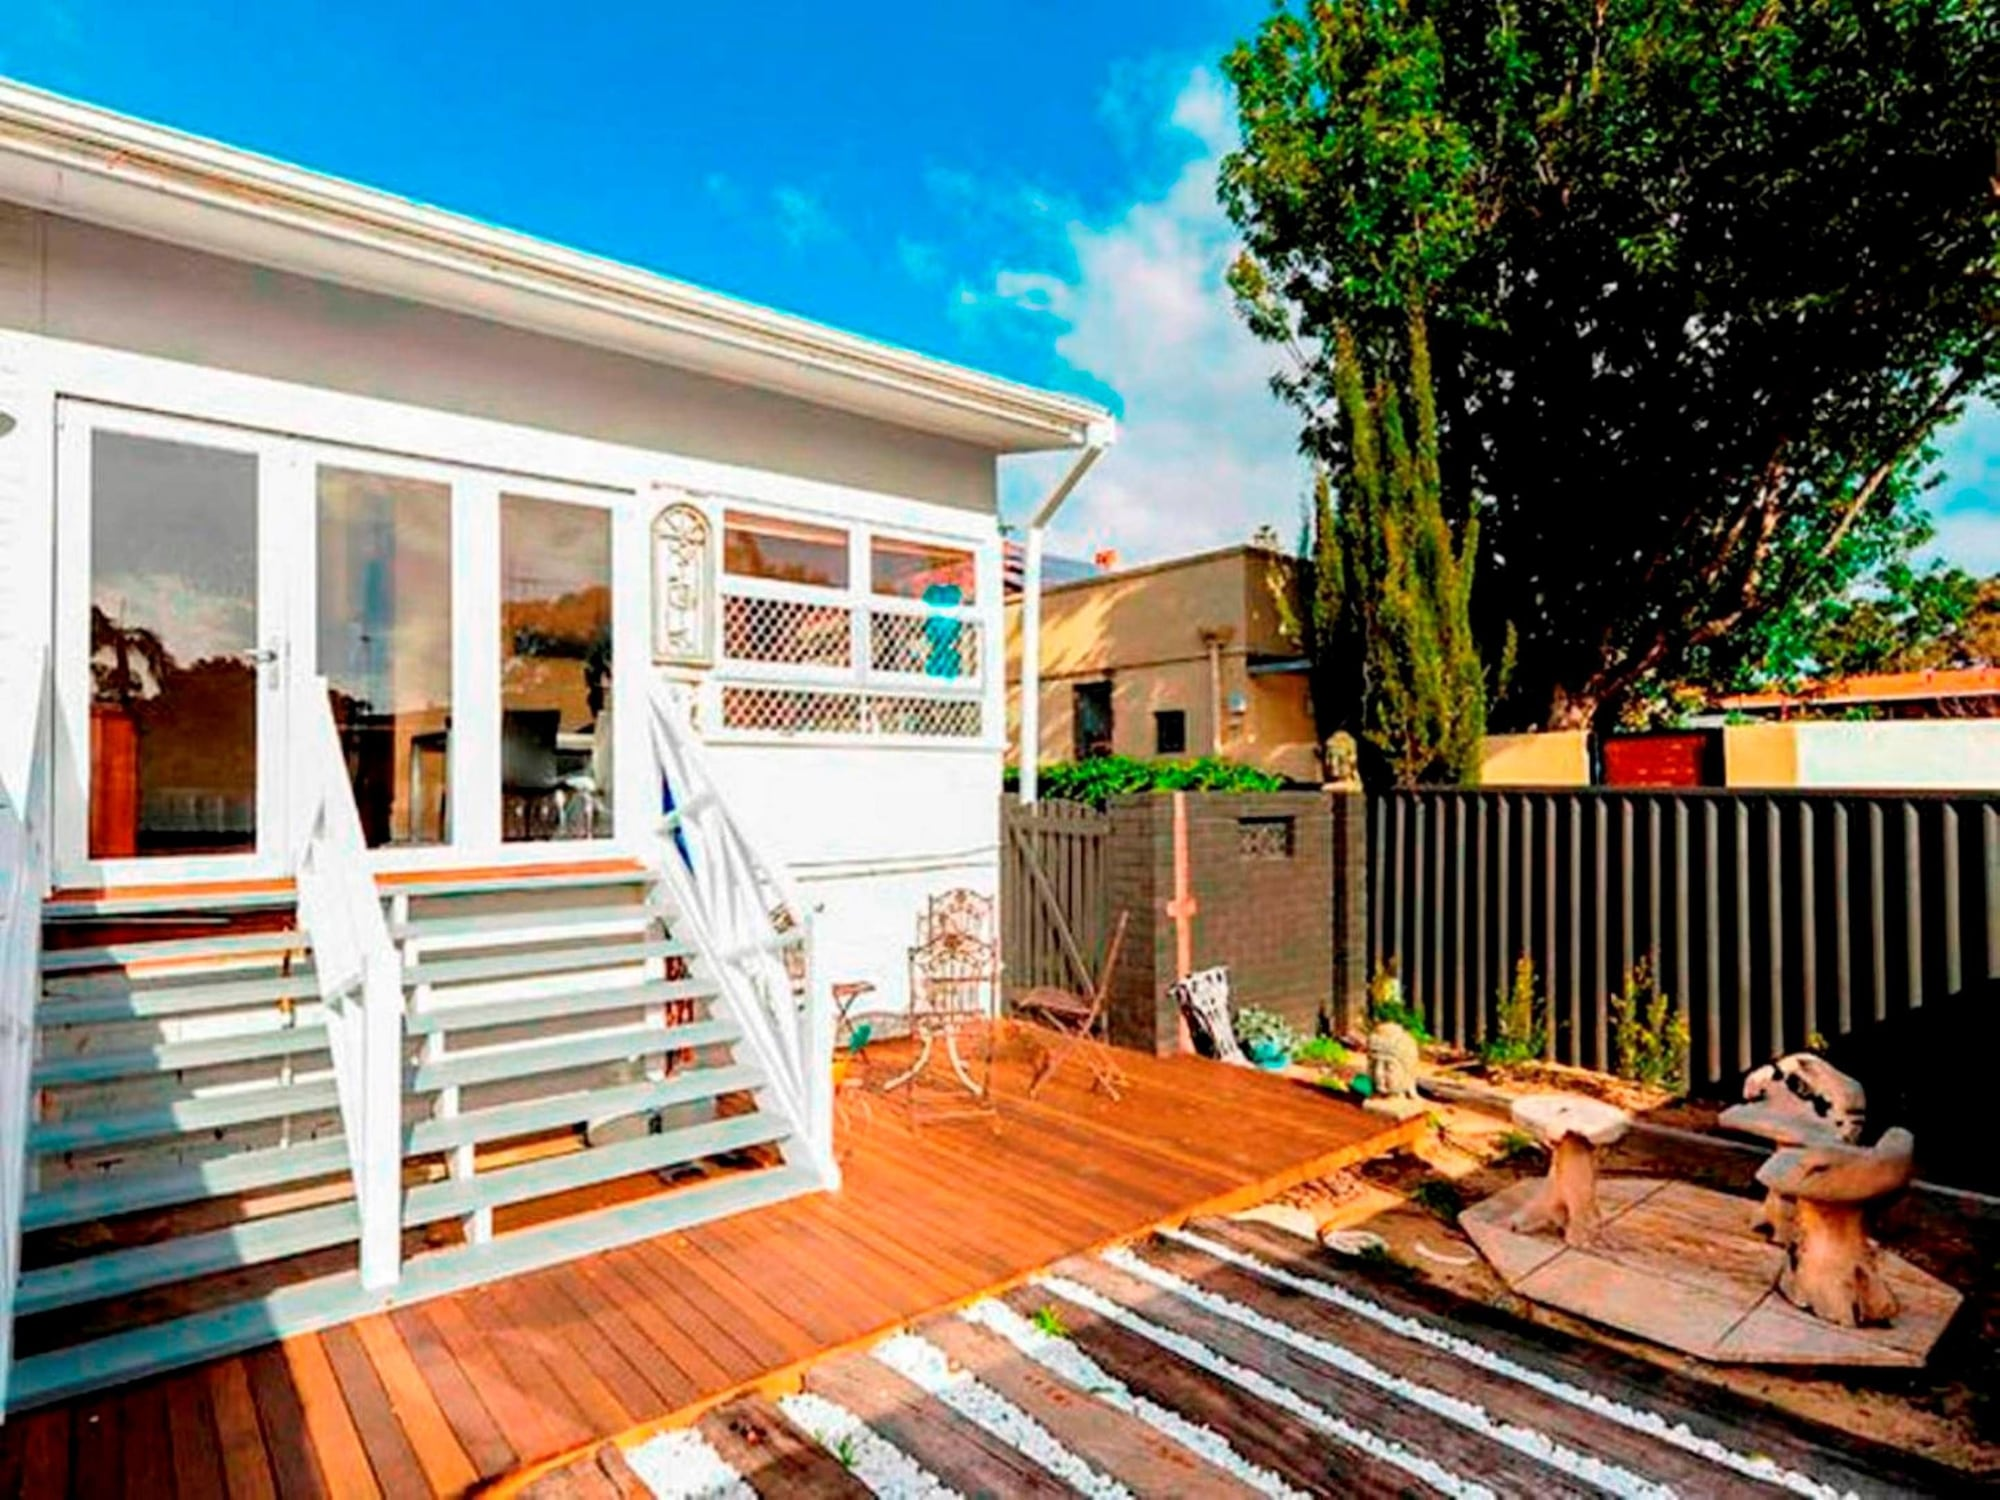 Heritage and Charming House in Subi, Subiaco